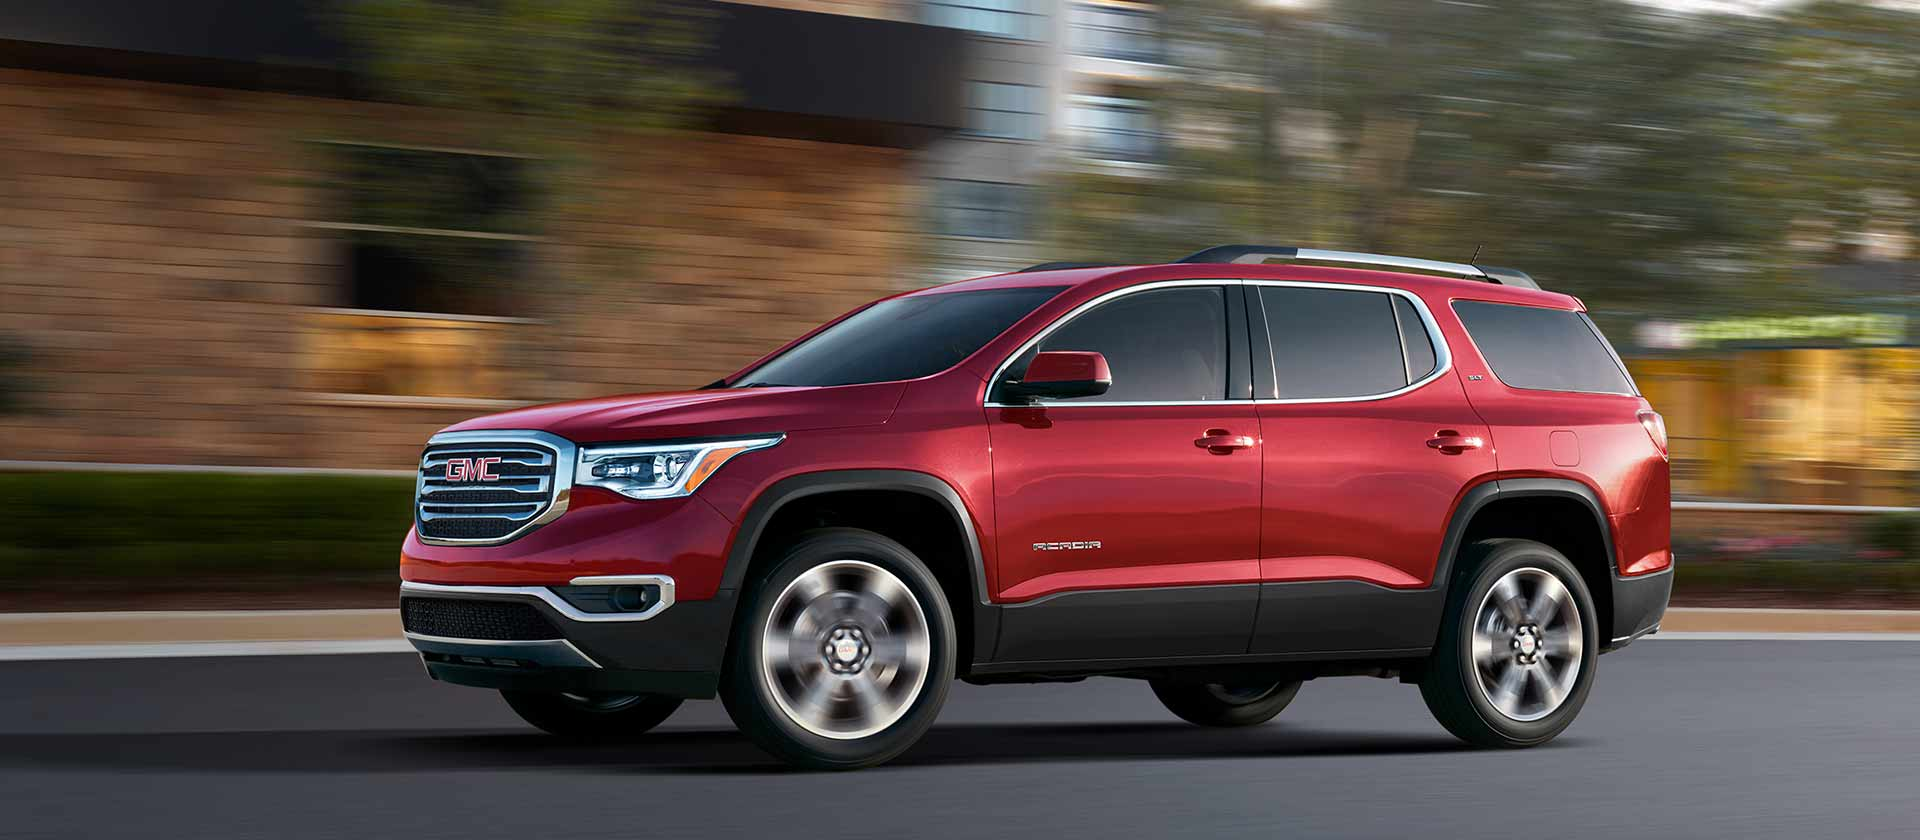 chevy truck chevrolet traverse incentives gmc within gm